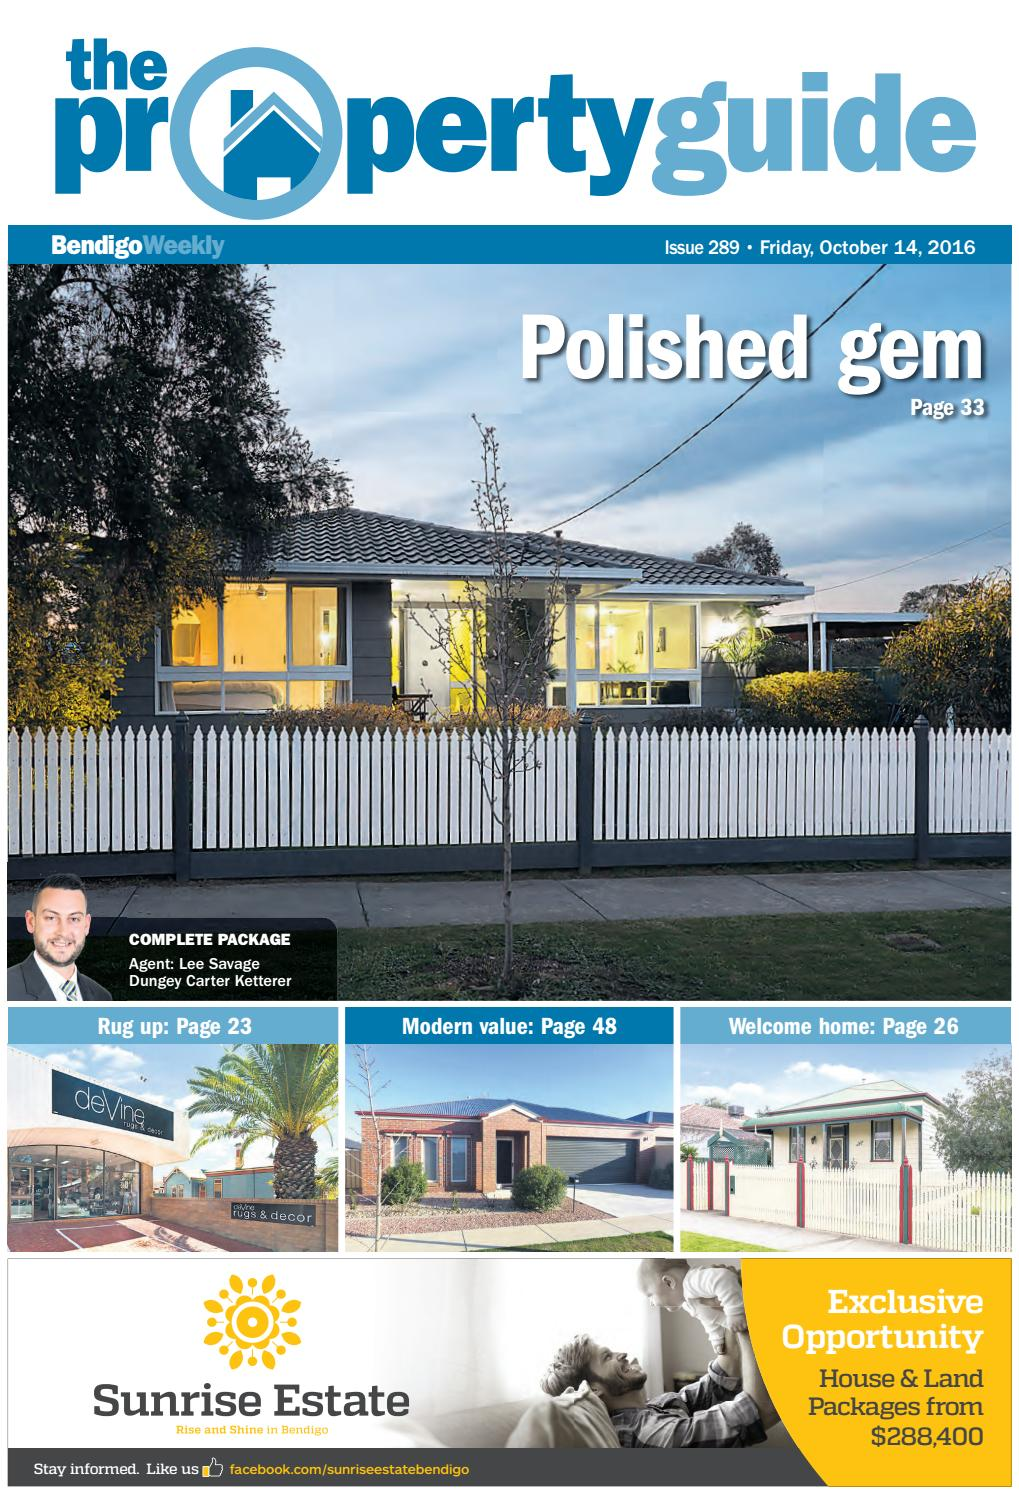 Bendigo Weekly Property Guide issue #989 - Fri, Oct 14, 2016 by ...